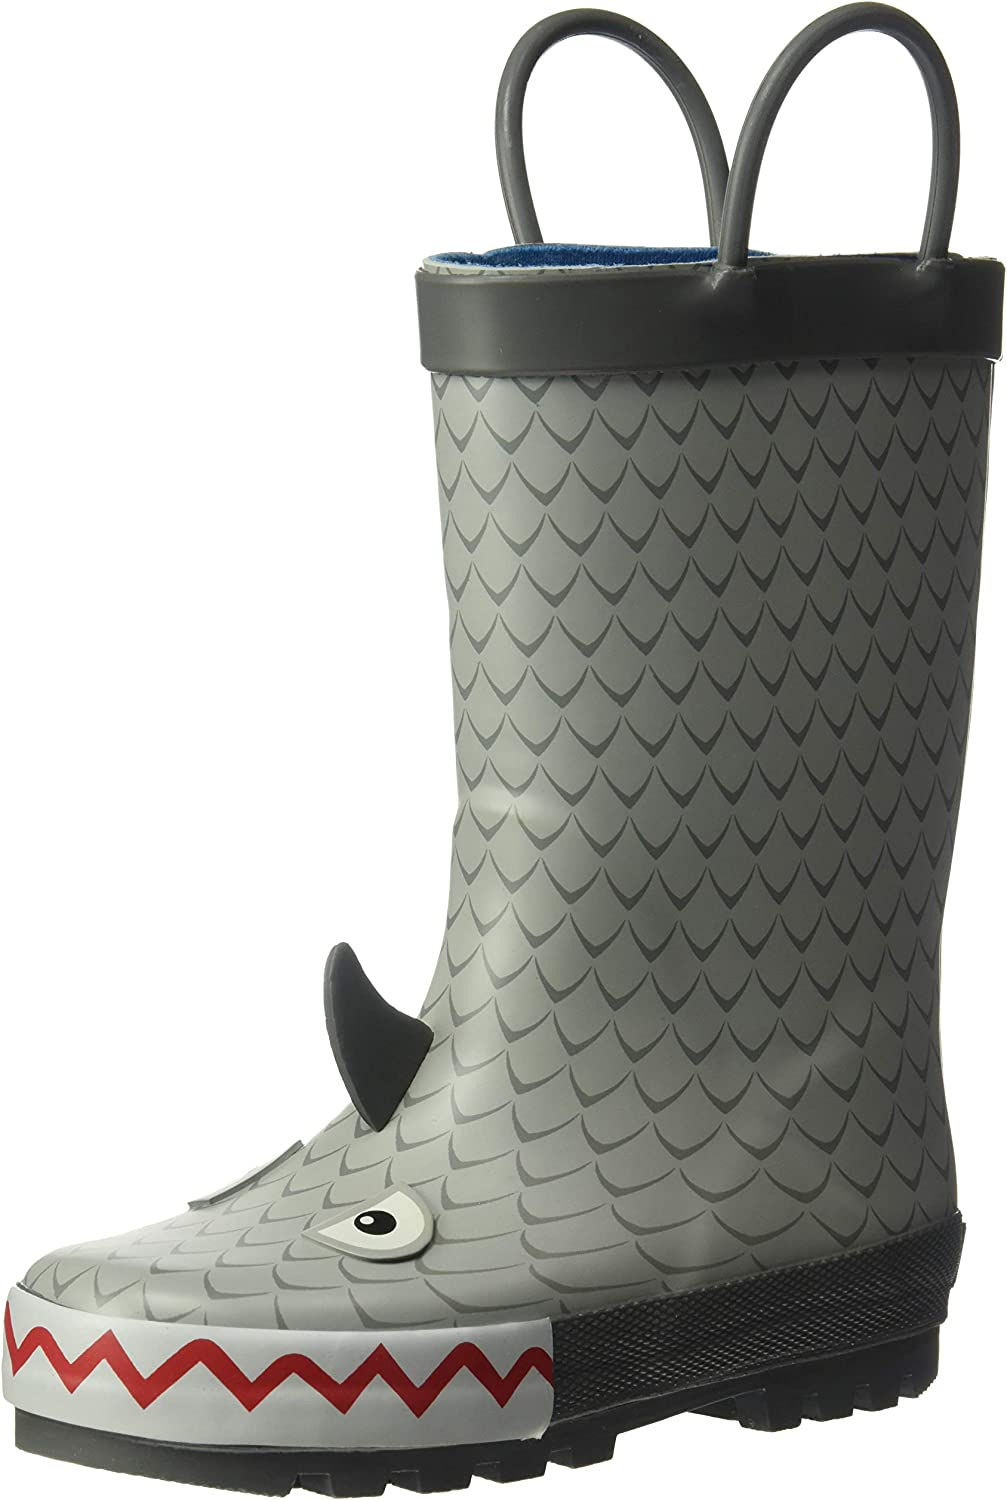 Carter's Boys' Marco Rubber Rainboot Rain Boot, Grey,